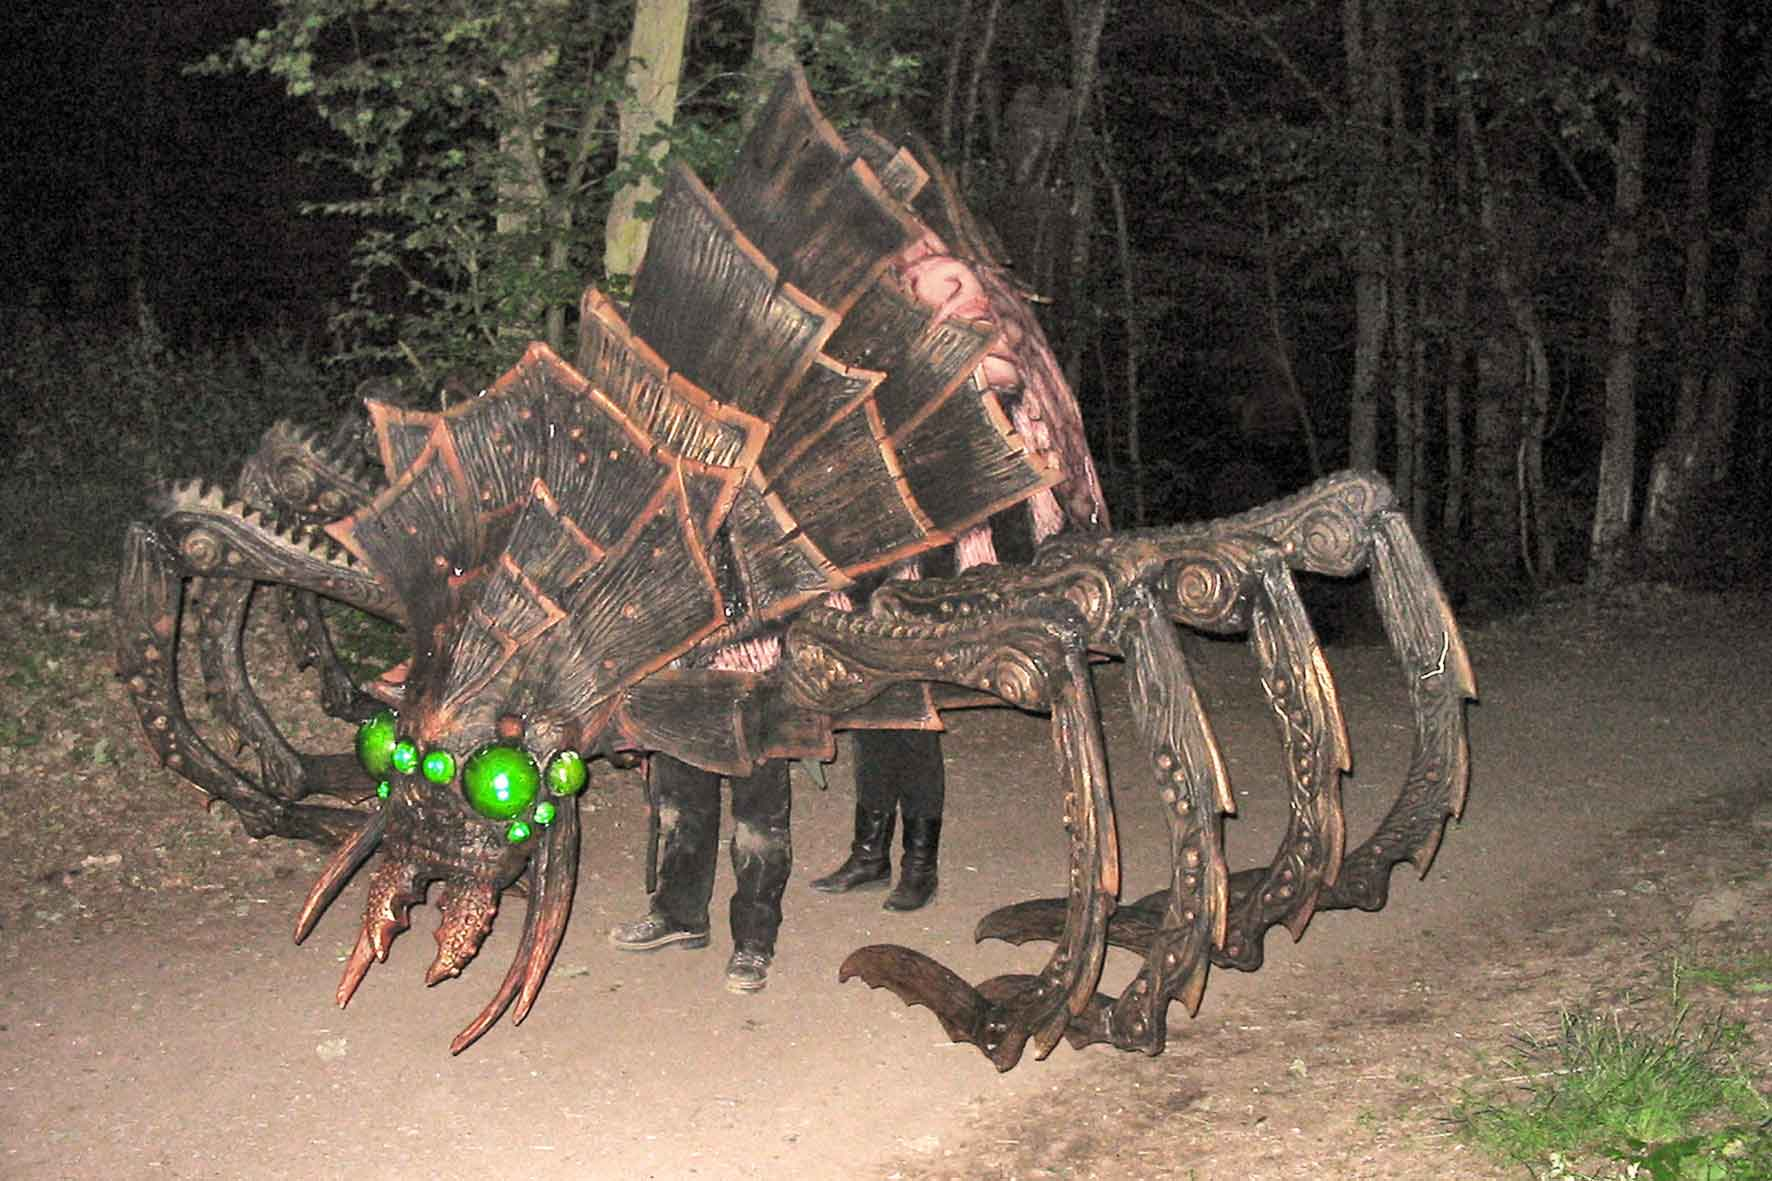 Real life giants spider - photo#9